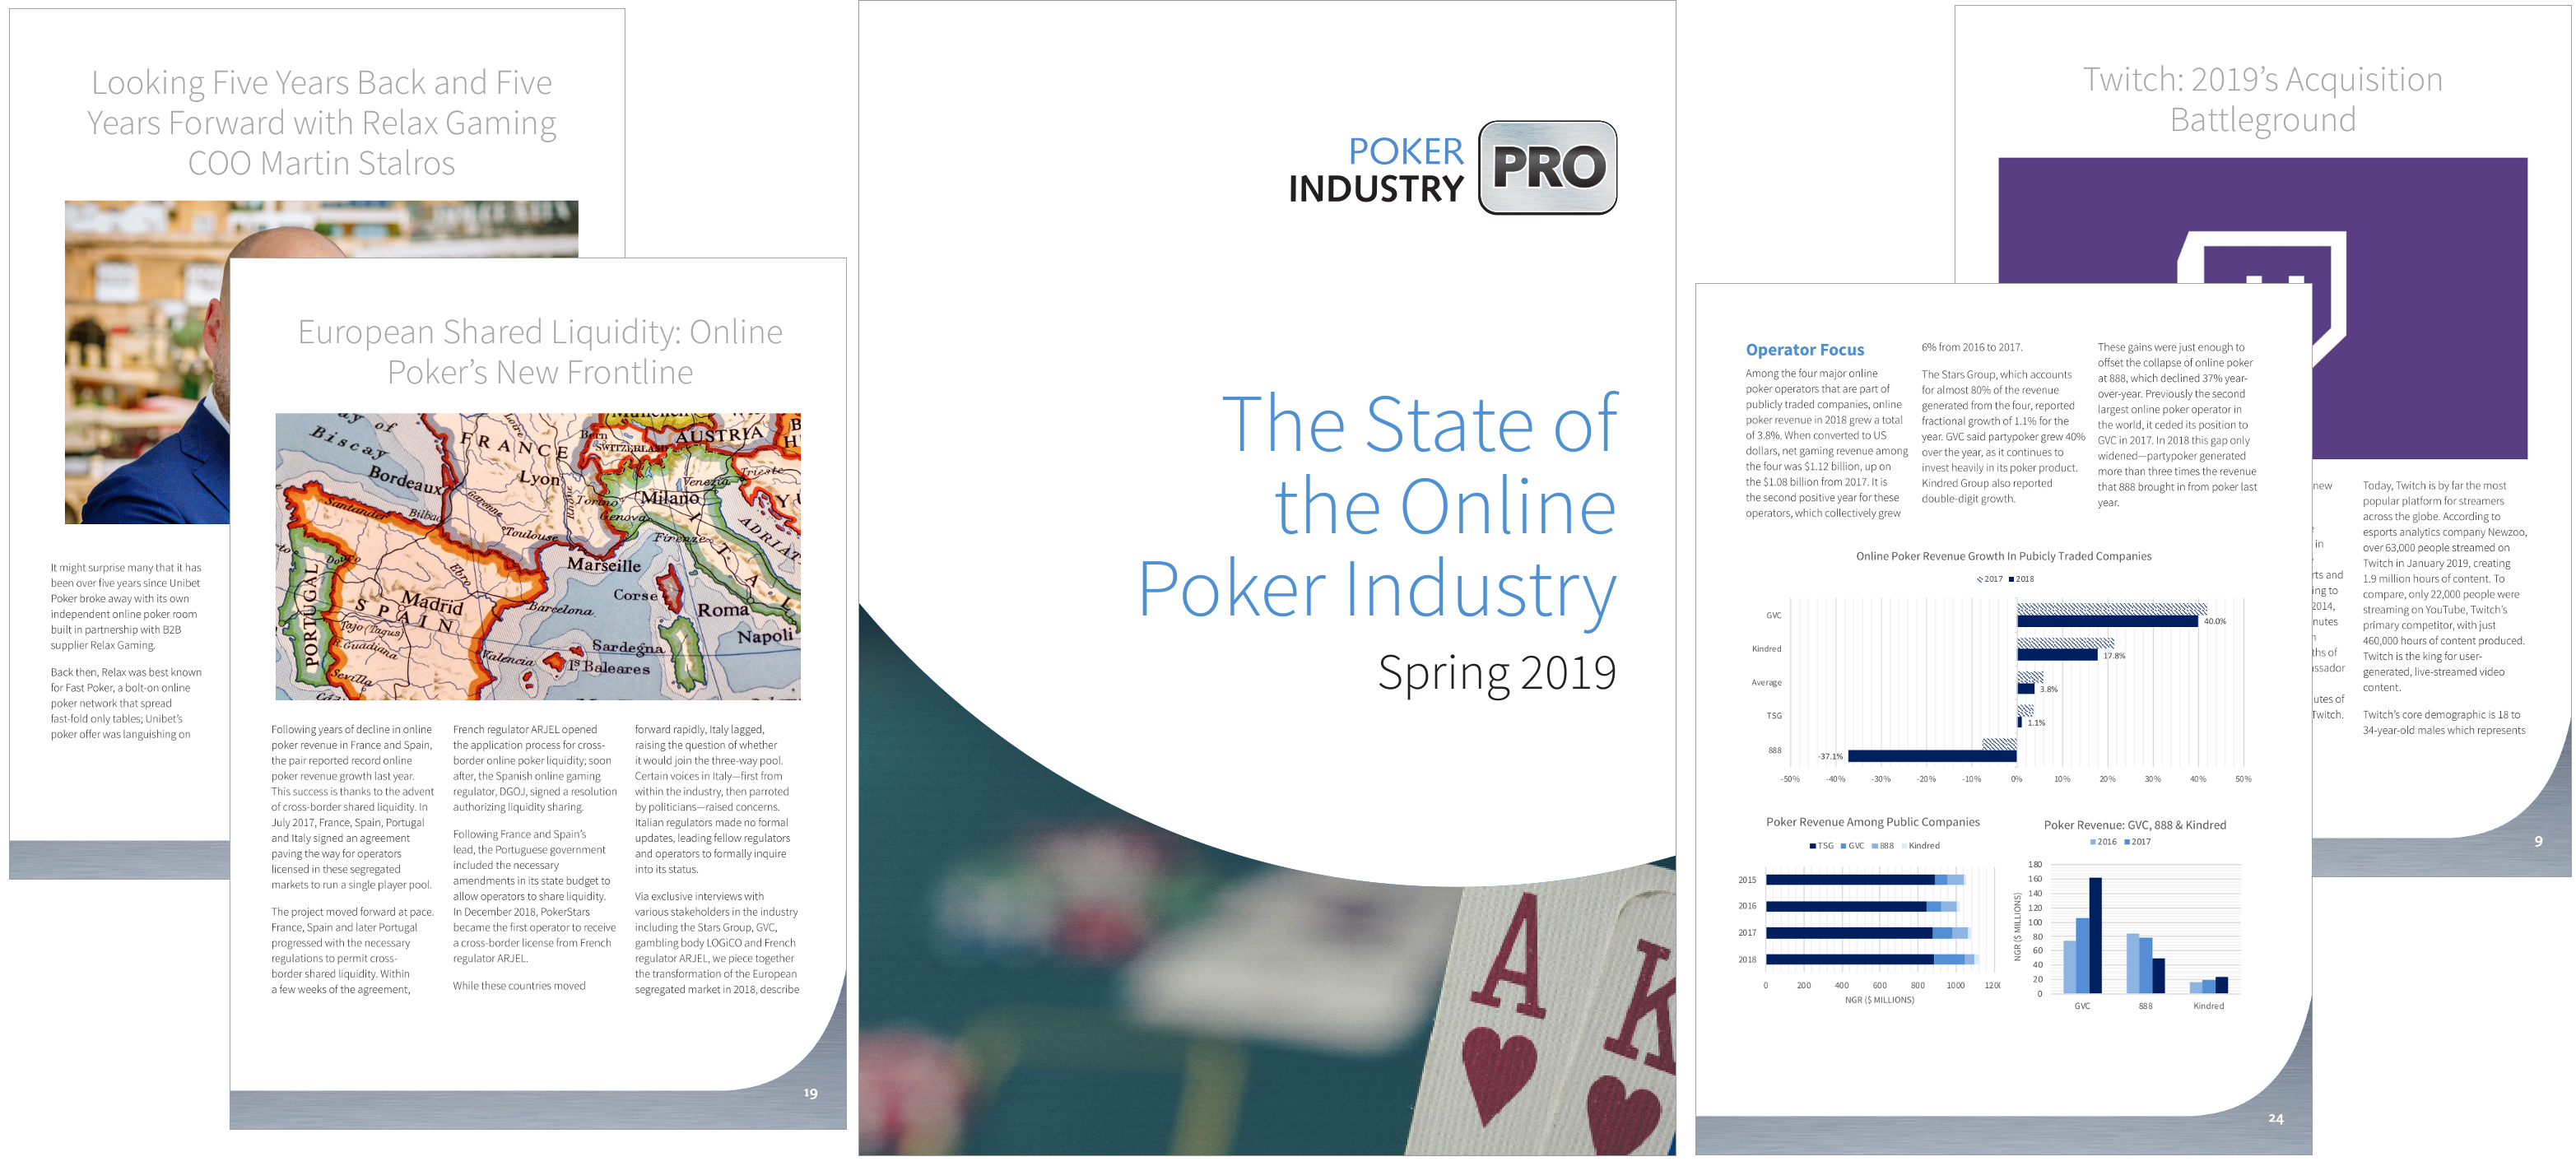 The report provides in-depth analysis of several aspects of the online poker industry including a detailed look at recent marketing strategies, product development, the regulatory landscape affecting the growth of the game and other key indicators.